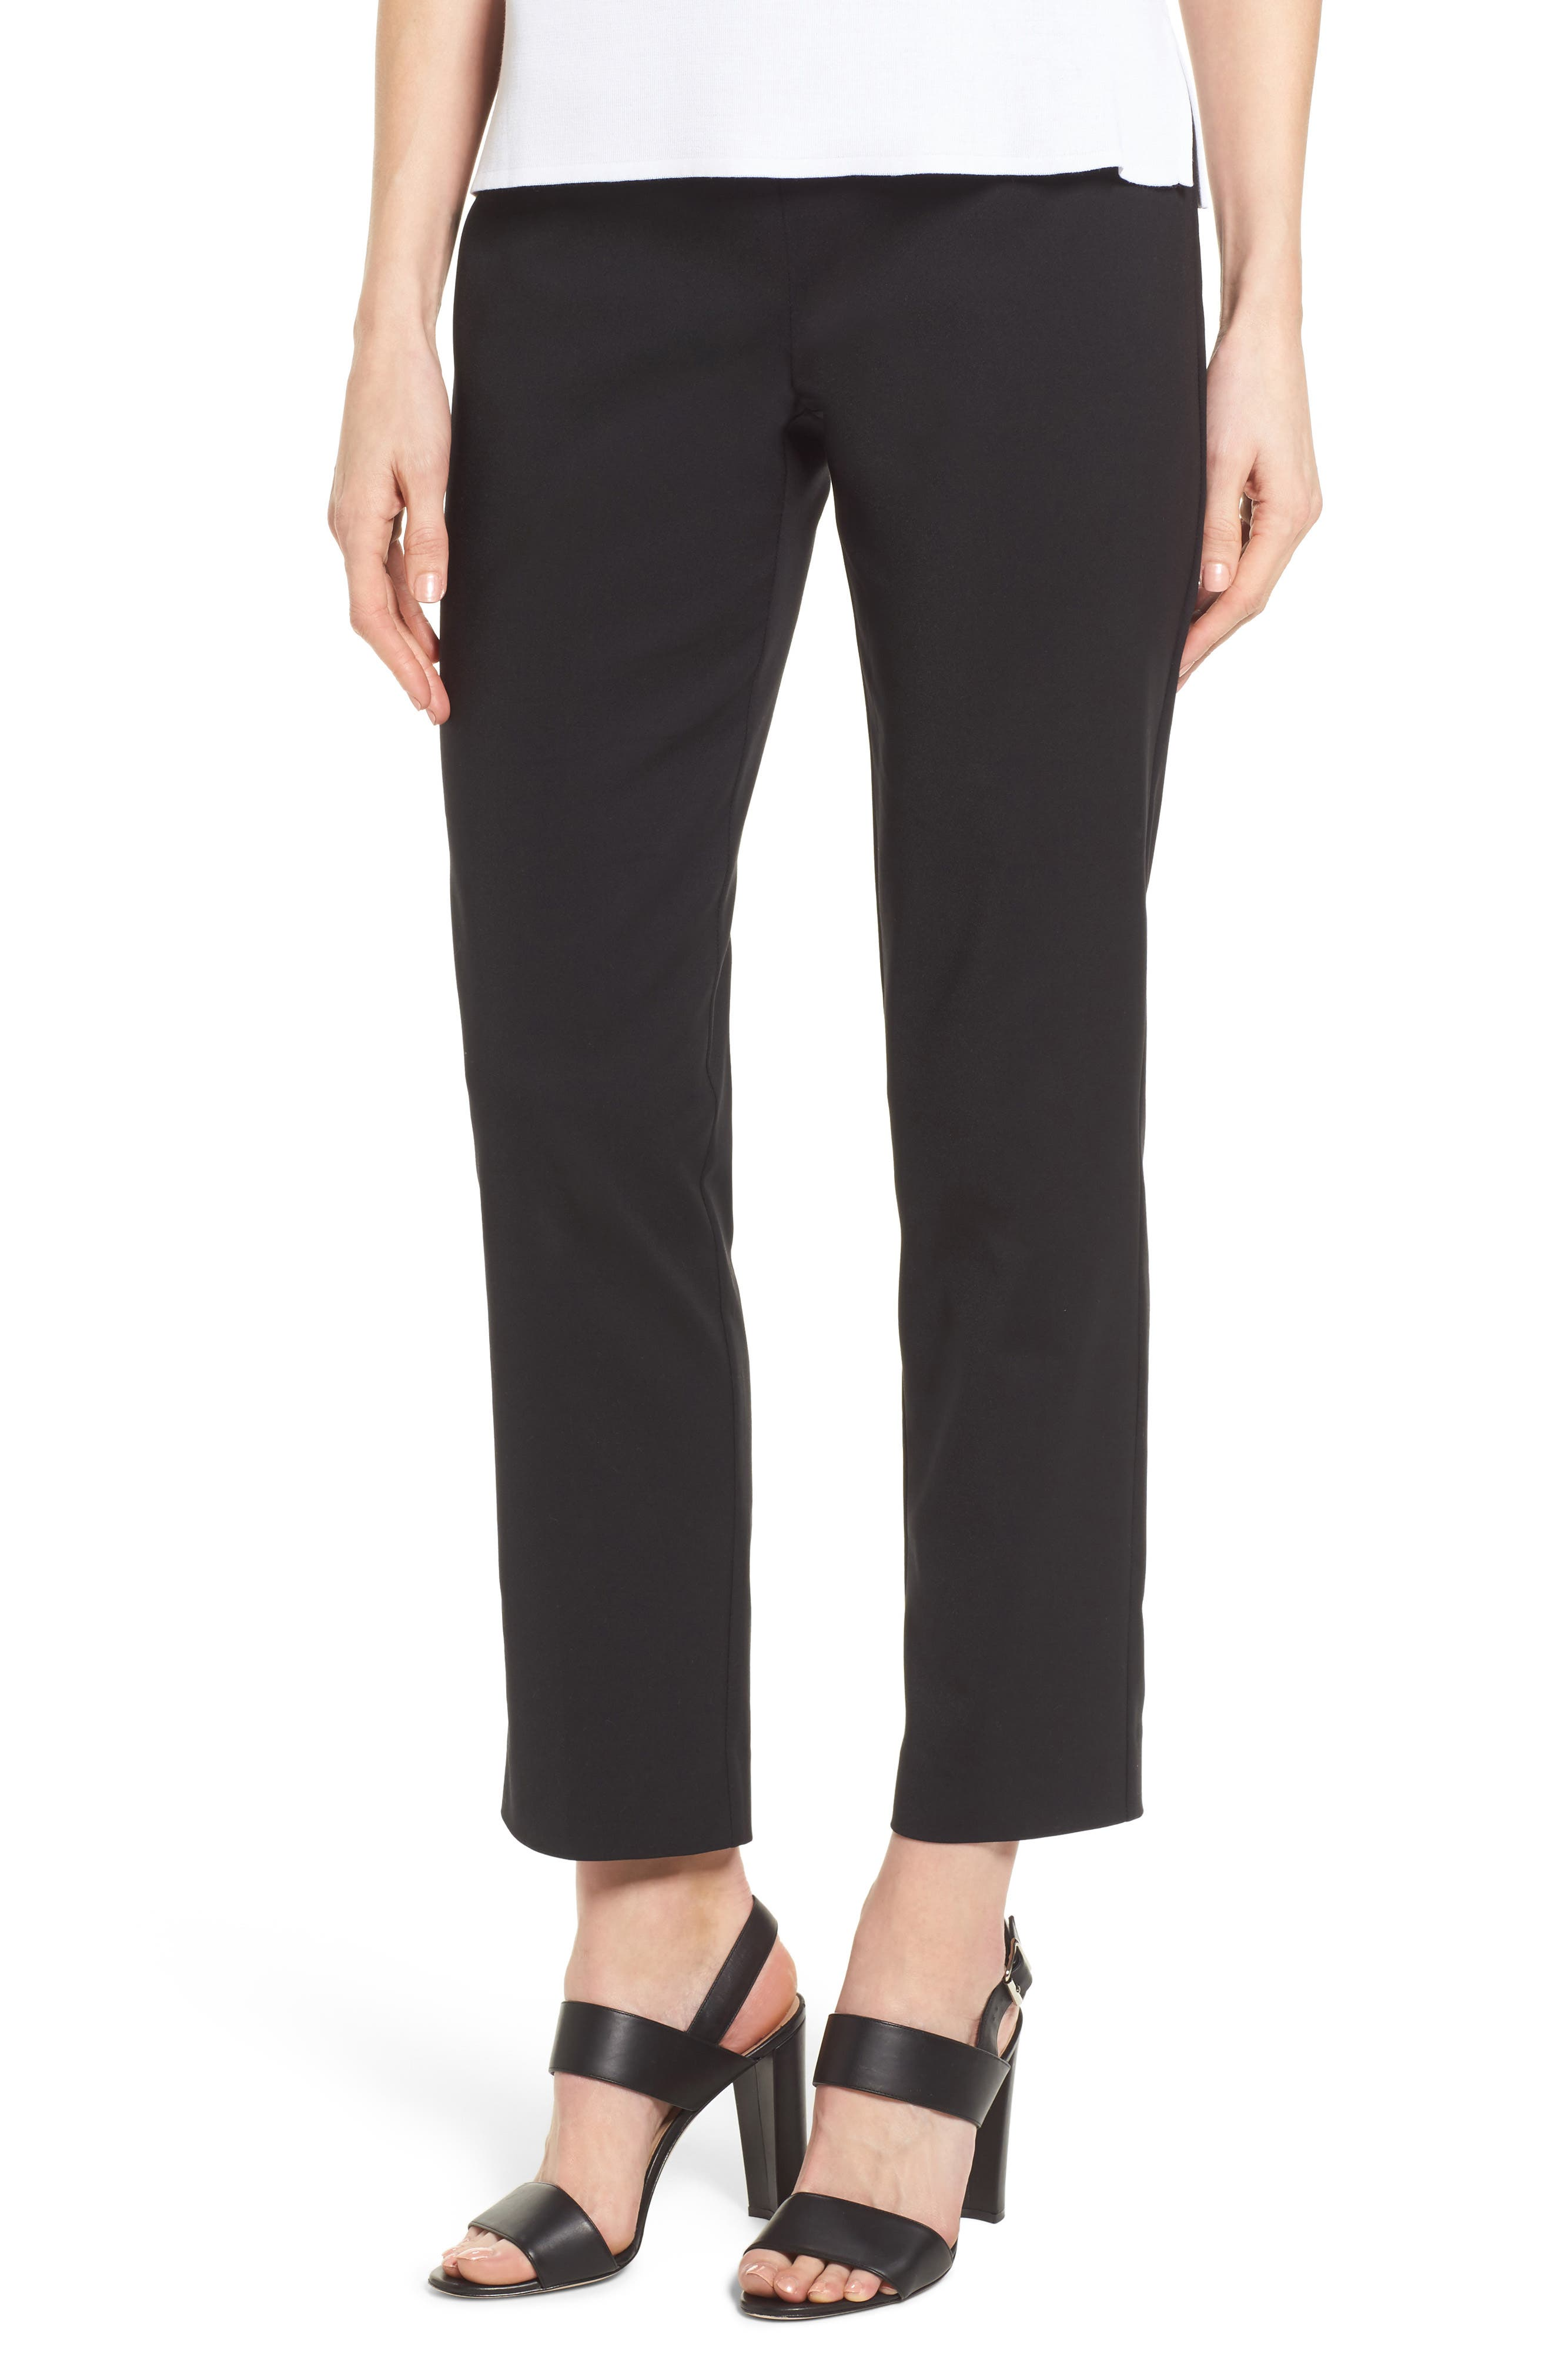 Ming Want Pull-On Ankle Pants,                             Main thumbnail 1, color,